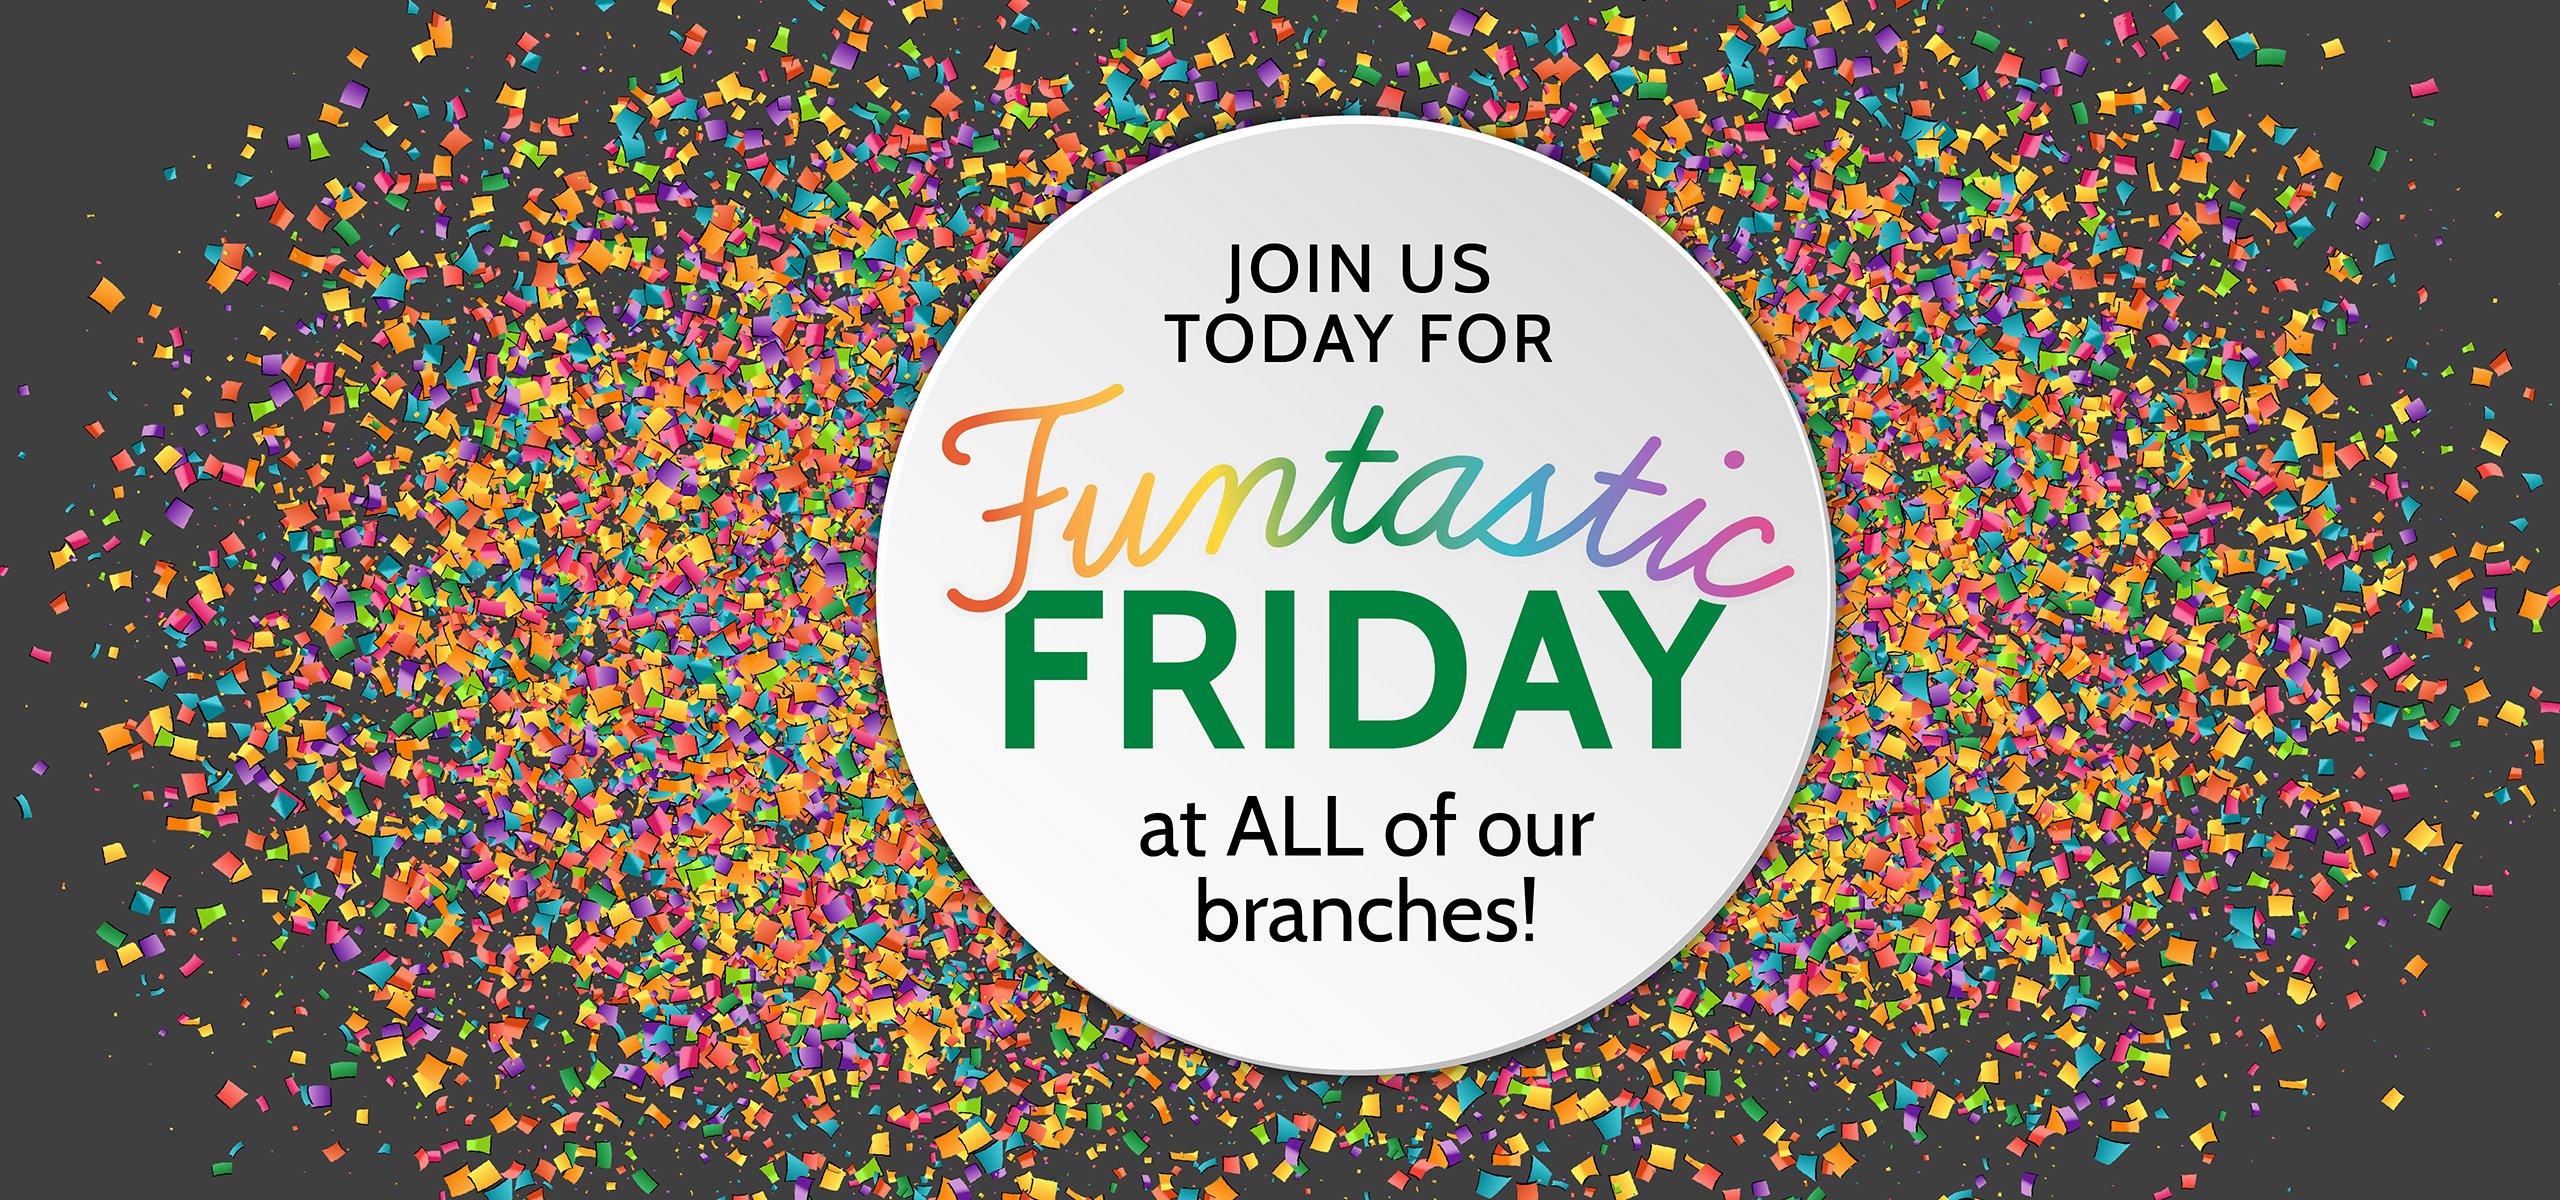 Join us today for Funtastic Friday at all of our branches!